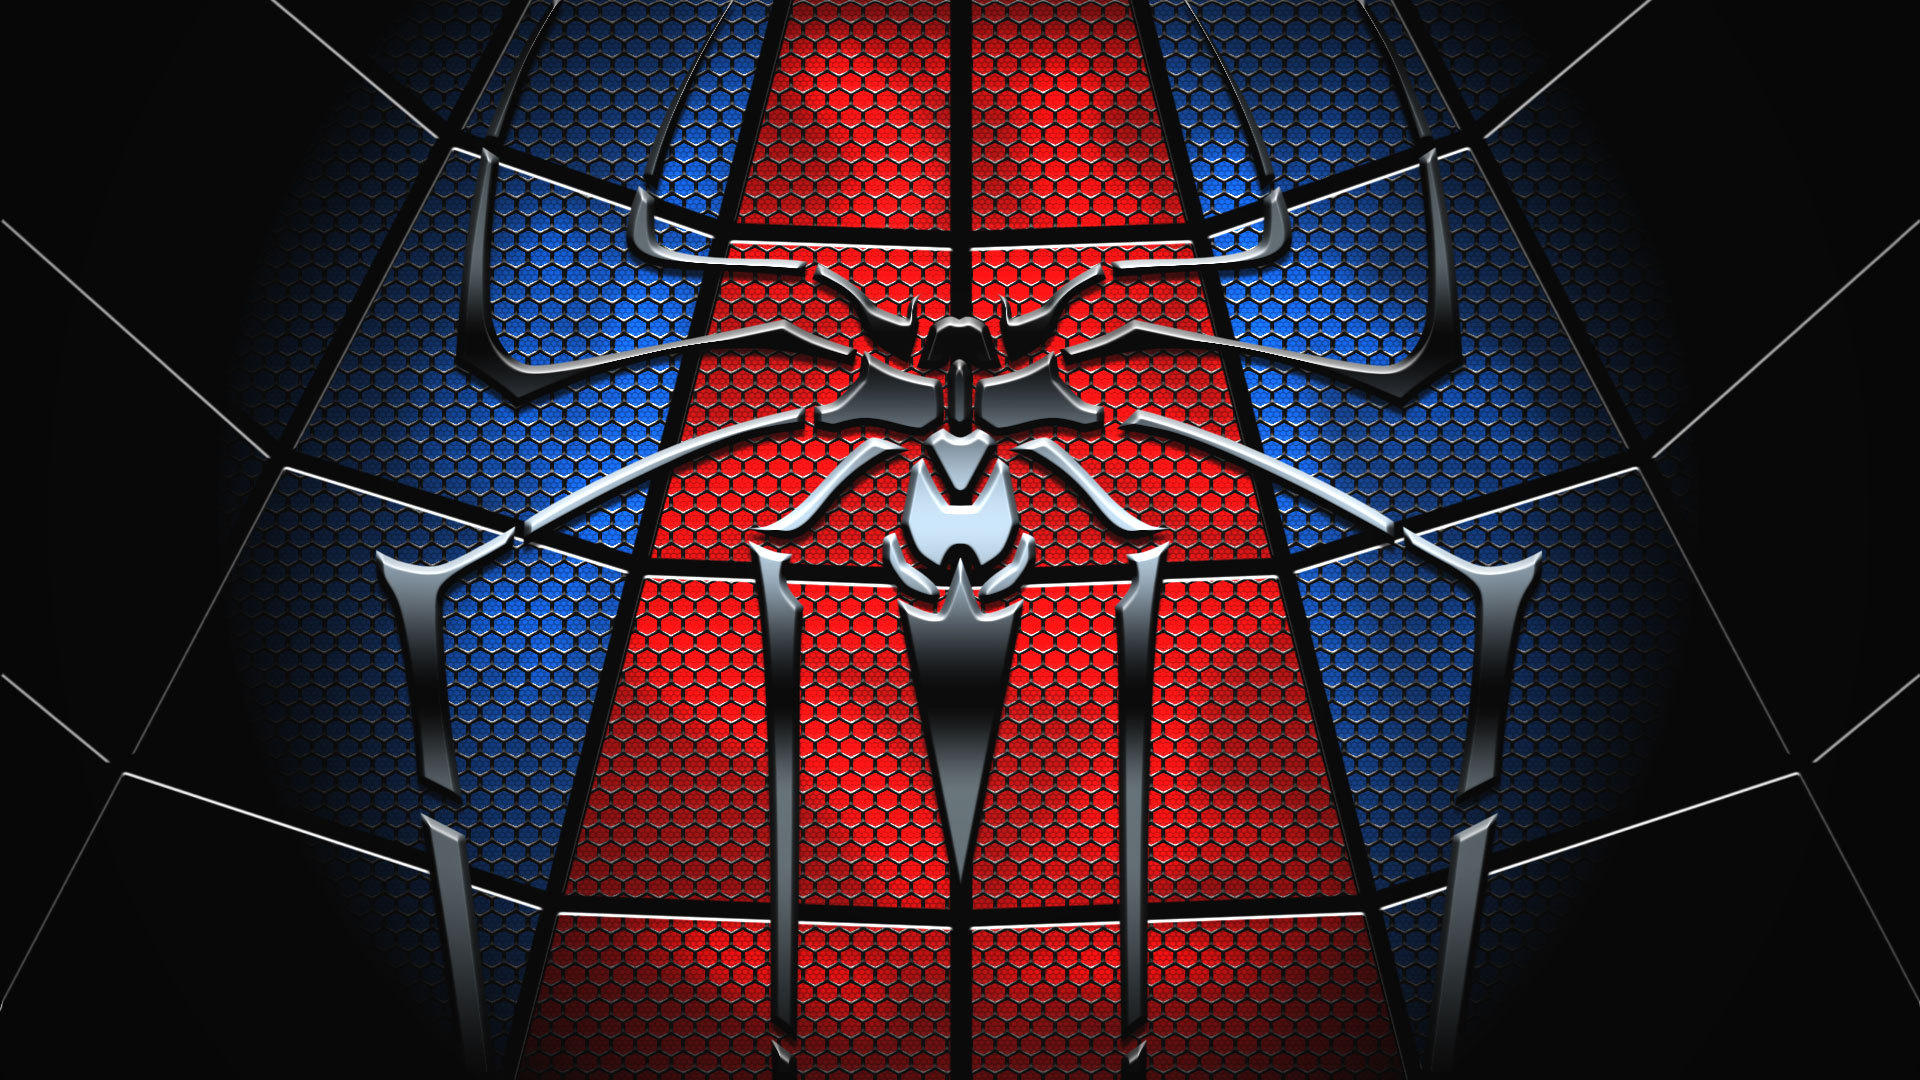 Spider man wallpapers images photos pictures backgrounds - Images spiderman ...